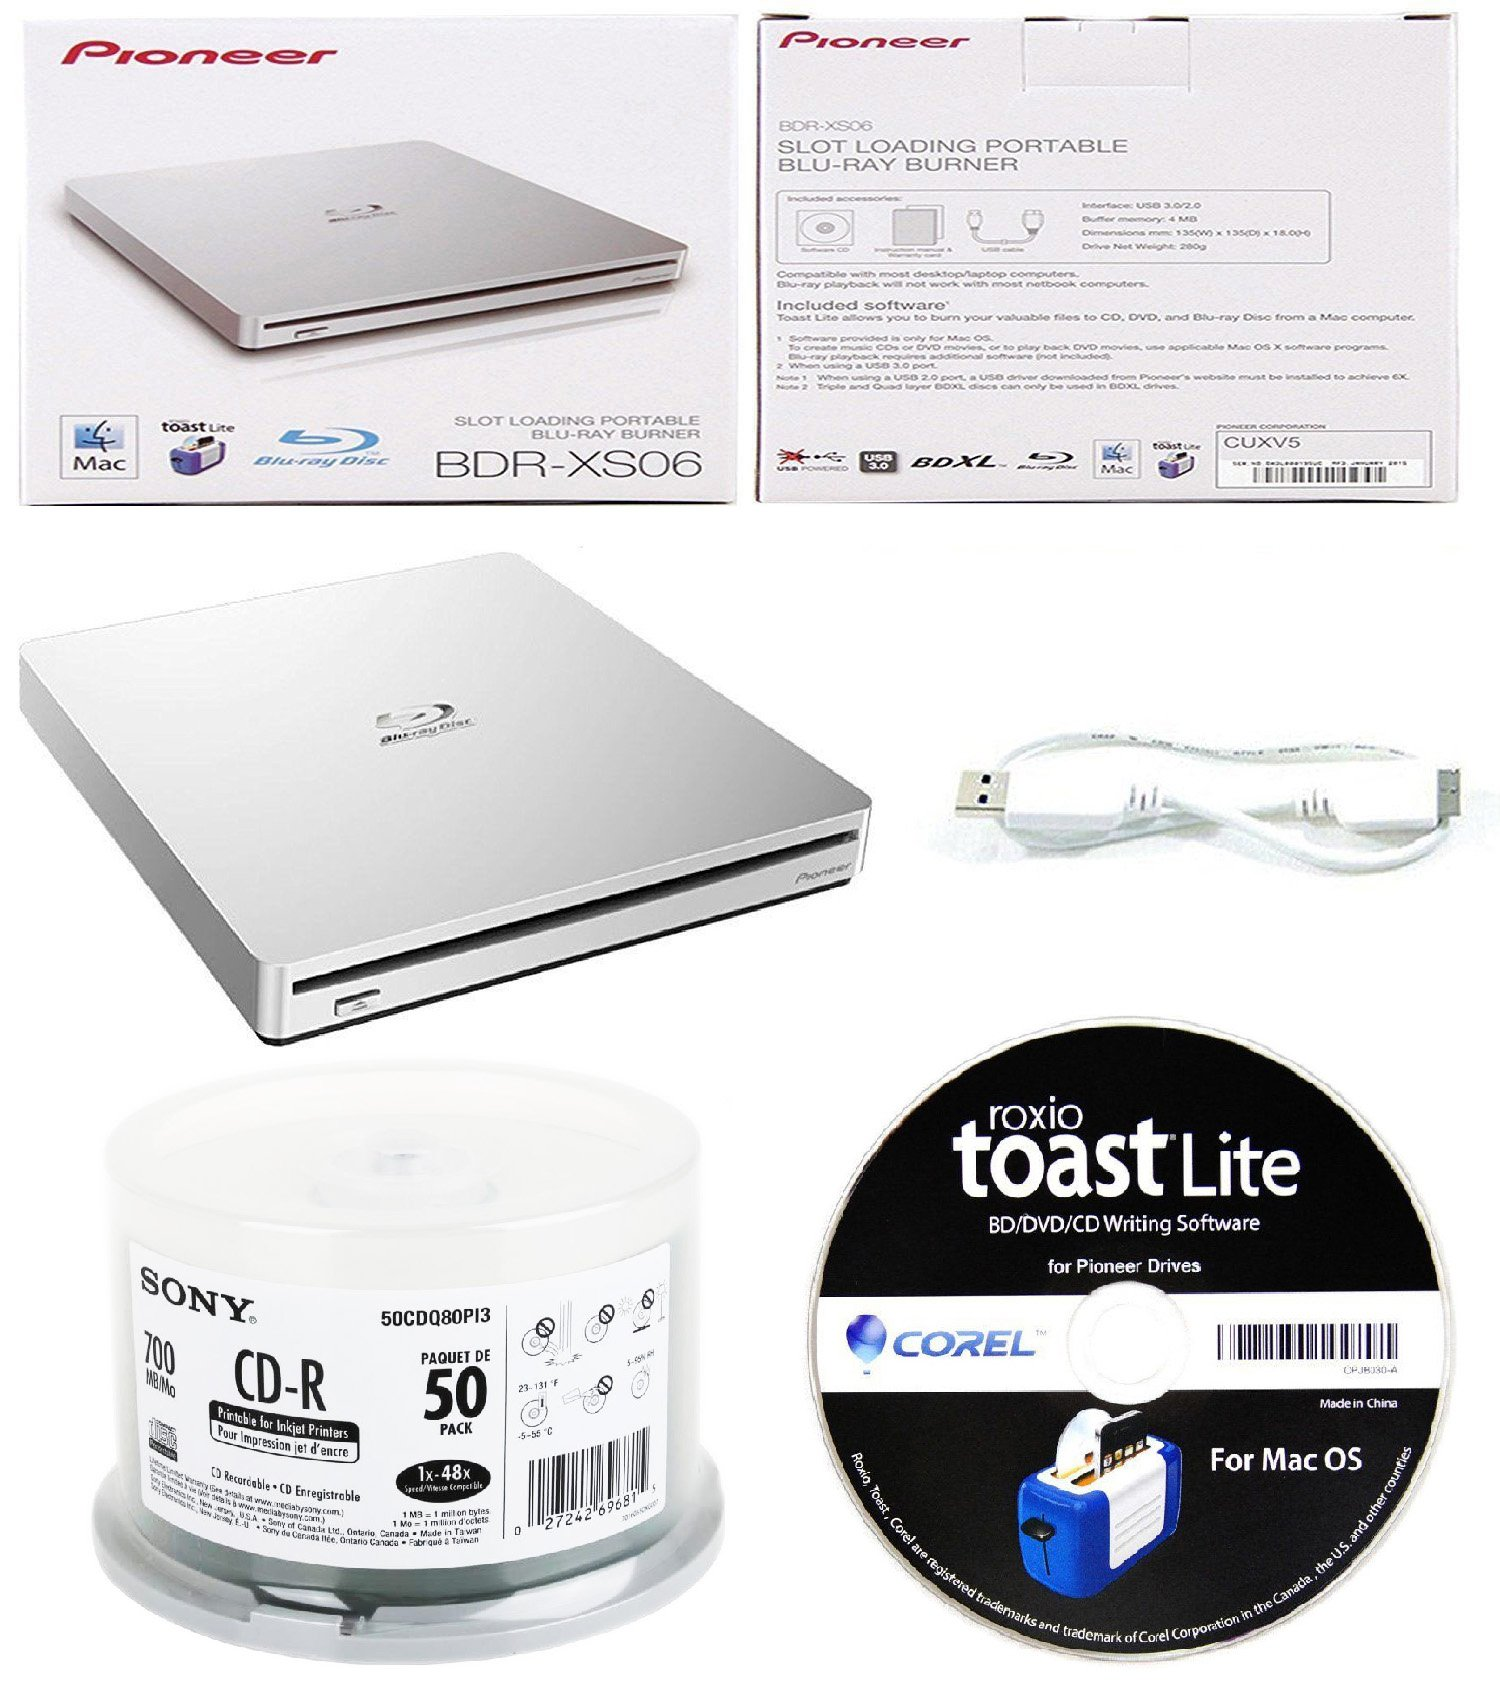 Pioneer 6x BDR-XS06 Slim Slot Portable External Blu-ray BDXL Burner, Roxio Toast Lite Software and USB Cable Bundle with 50pk CD-R Sony 700MB 48X White Inkjet Printable